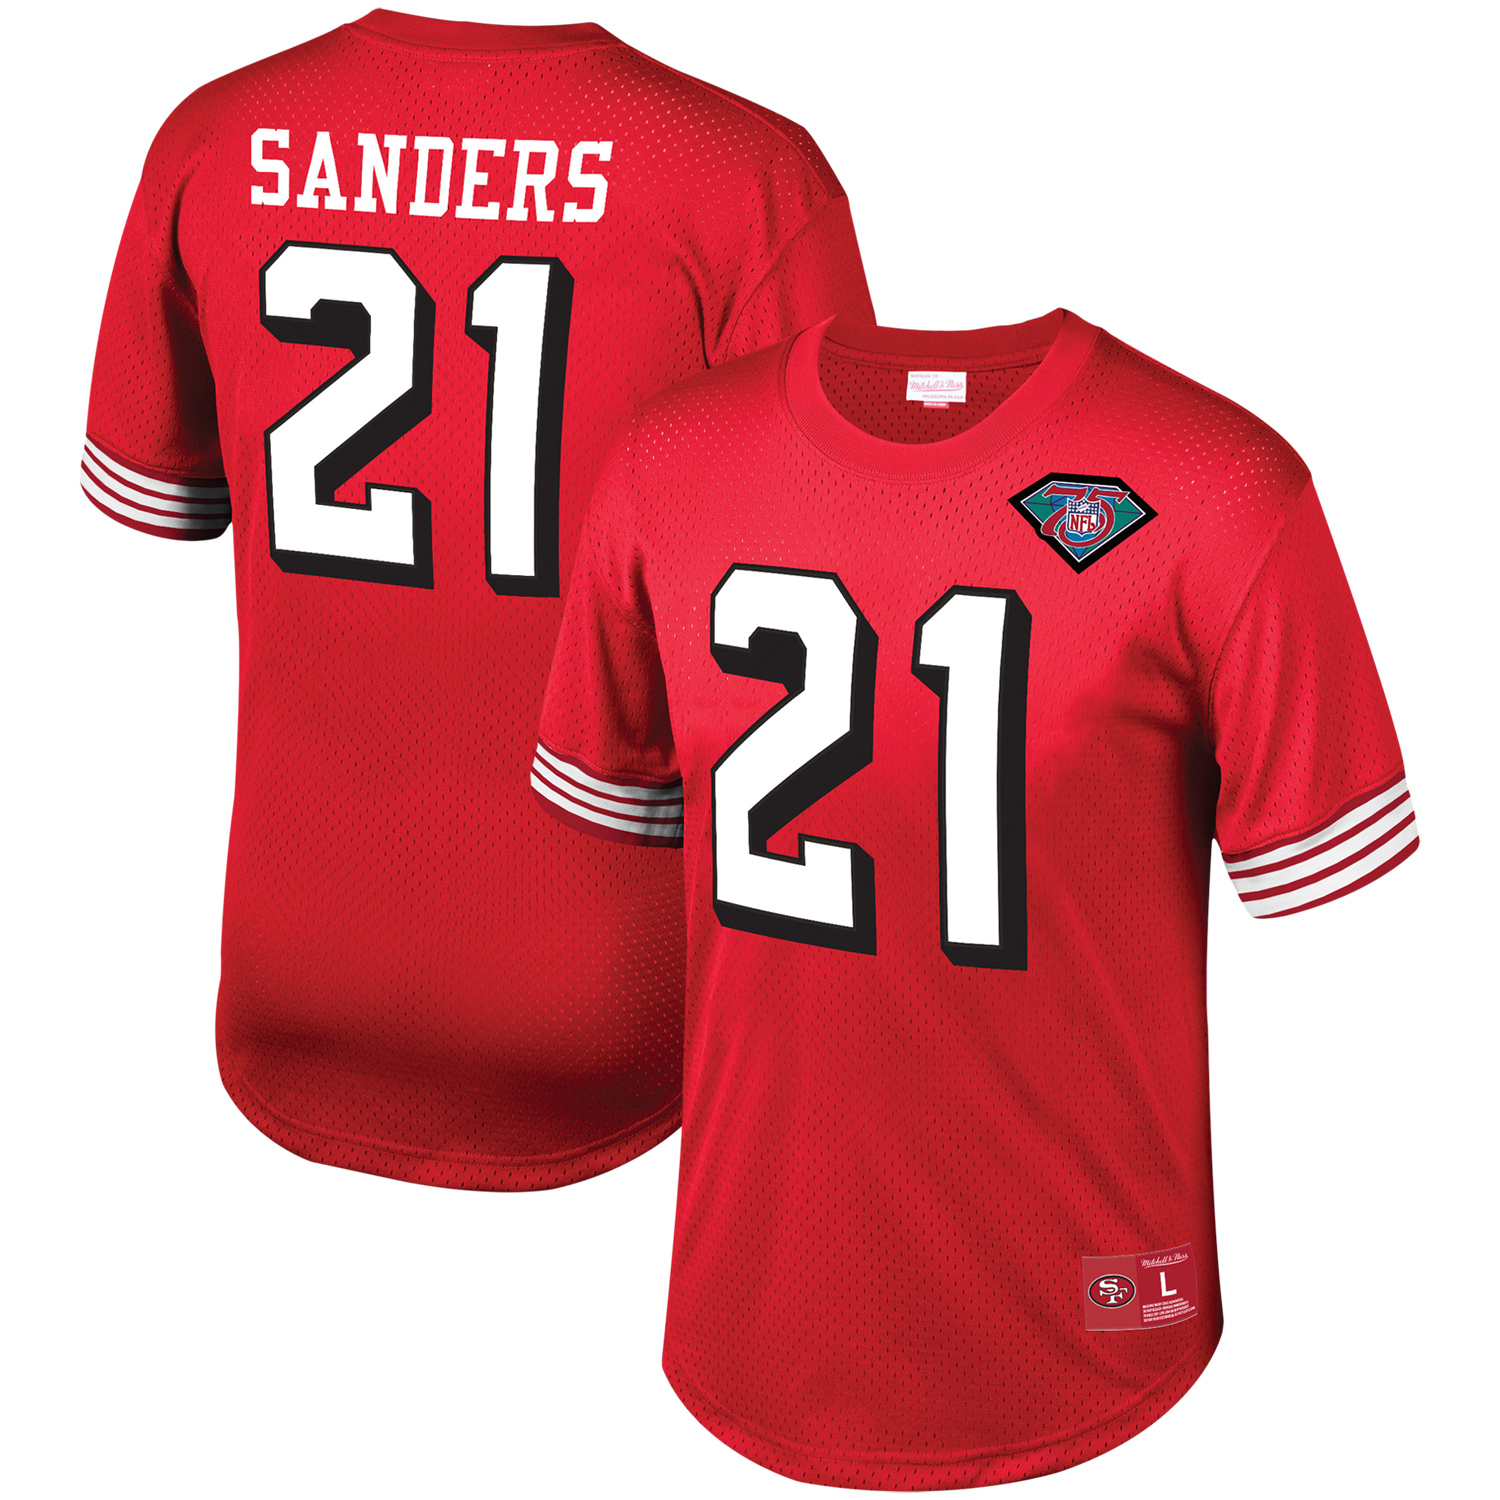 Deion Sanders San Francisco 49ers Mitchell & Ness Mesh Retired Player Name & Number Top - Scarlet